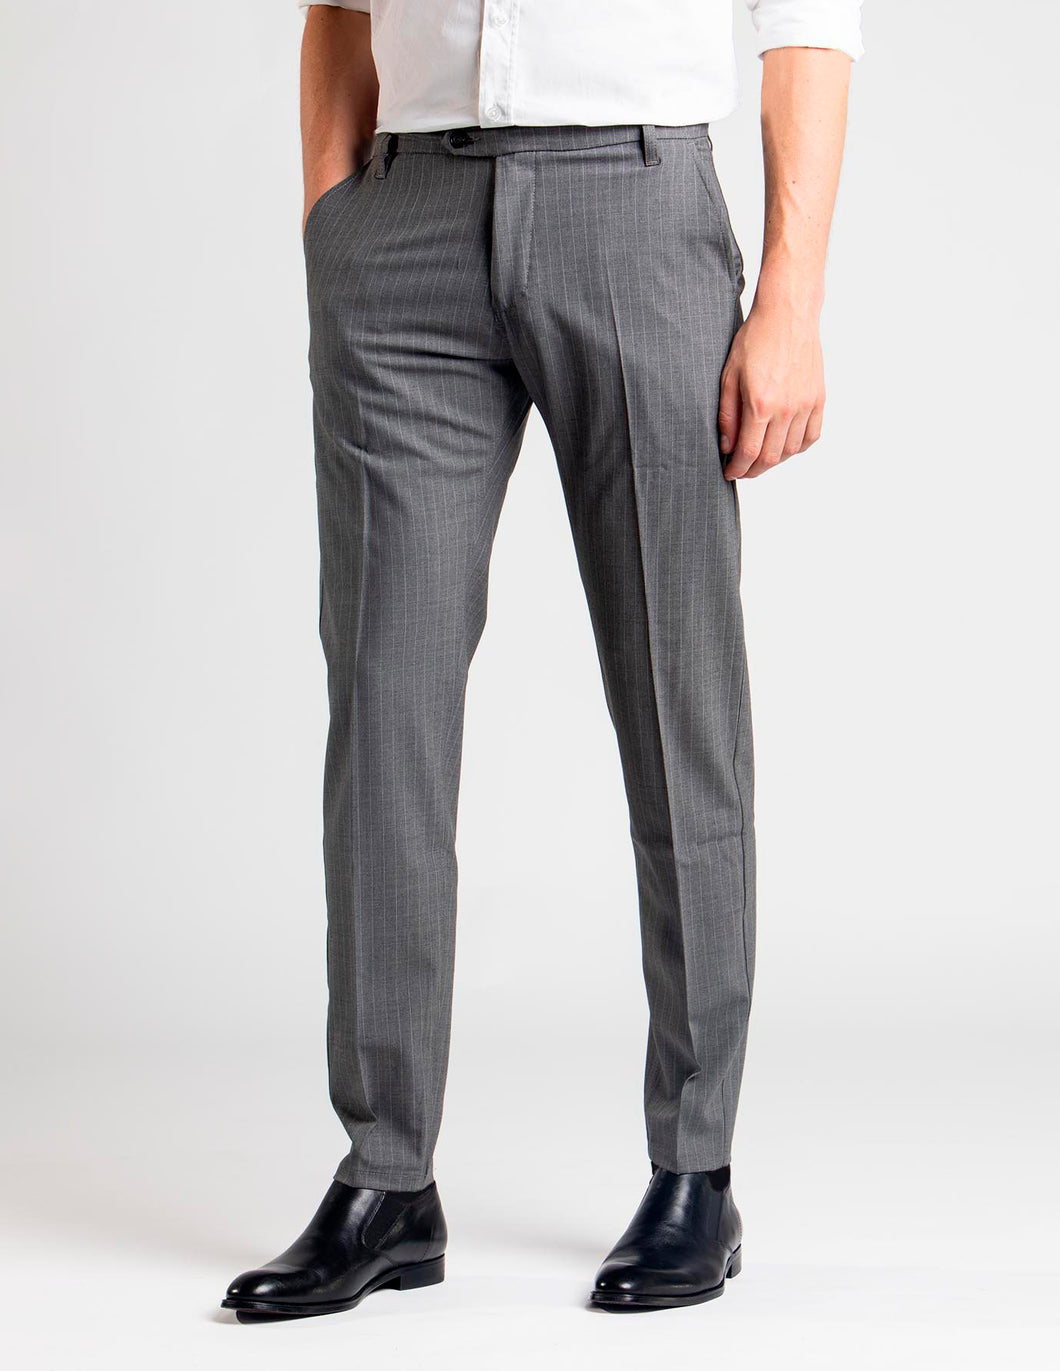 SNT Pico Pants Light Grey Pinstriped